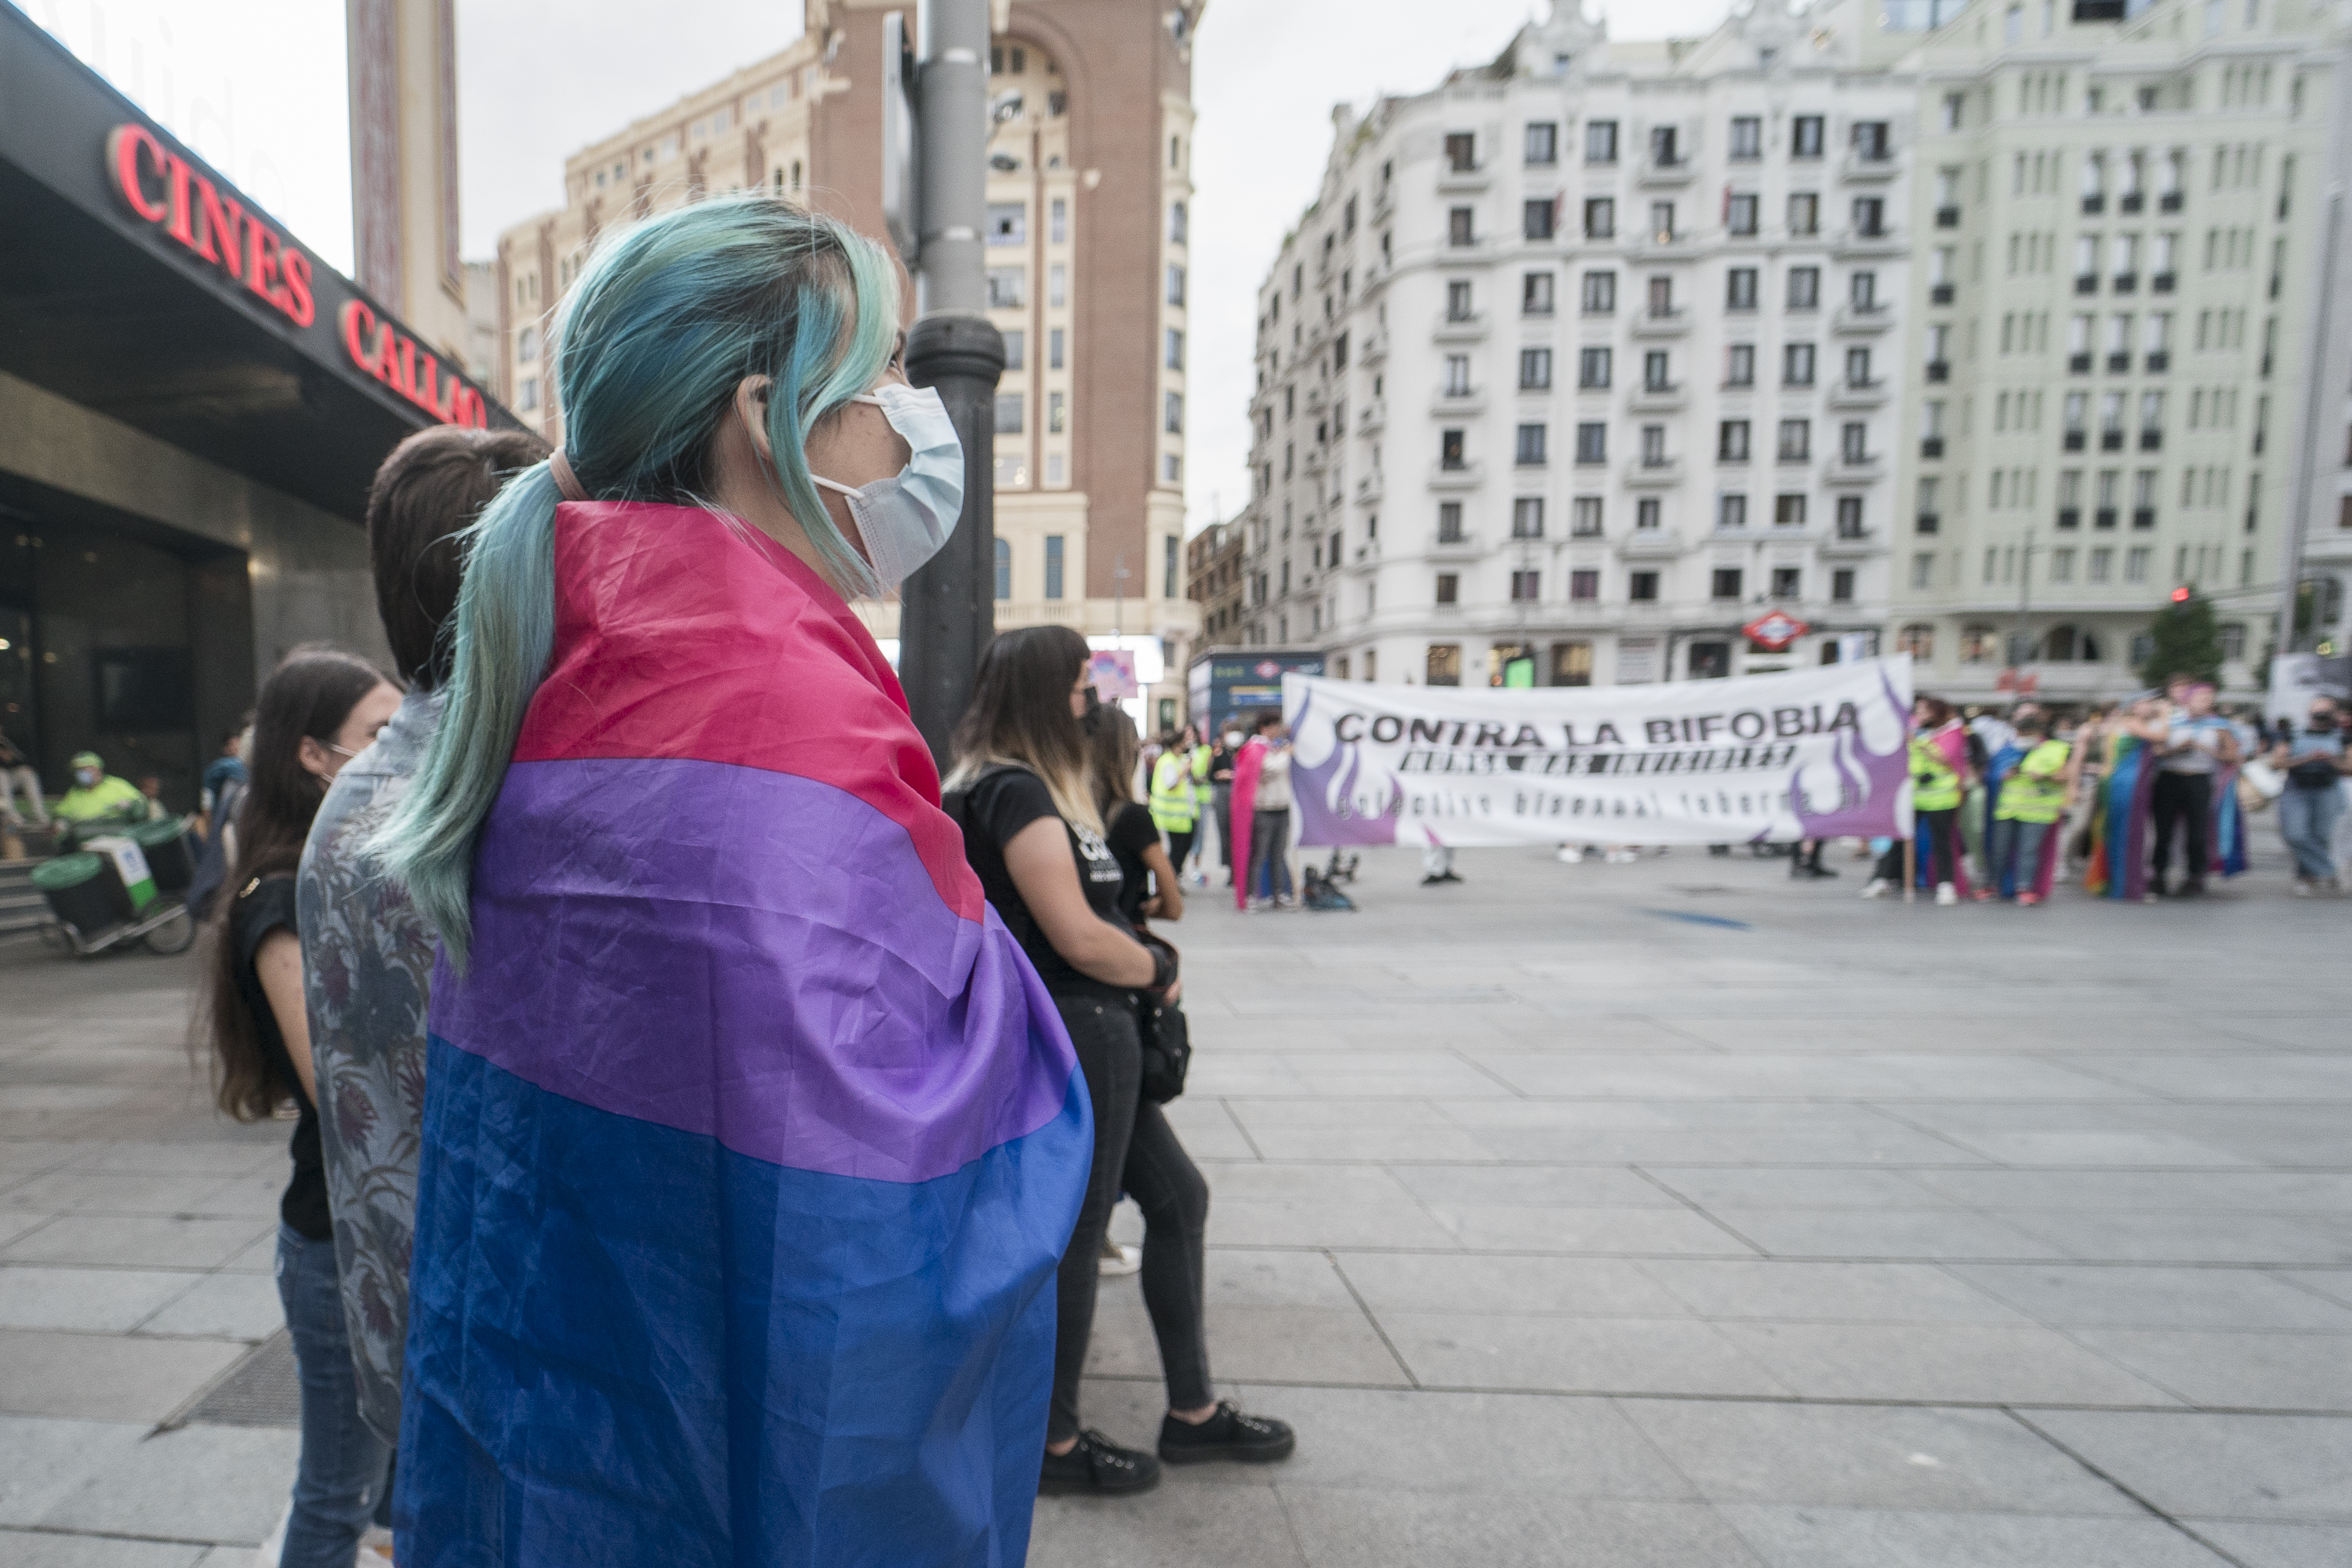 Rally In Madrid For International Bisexual Awareness Day